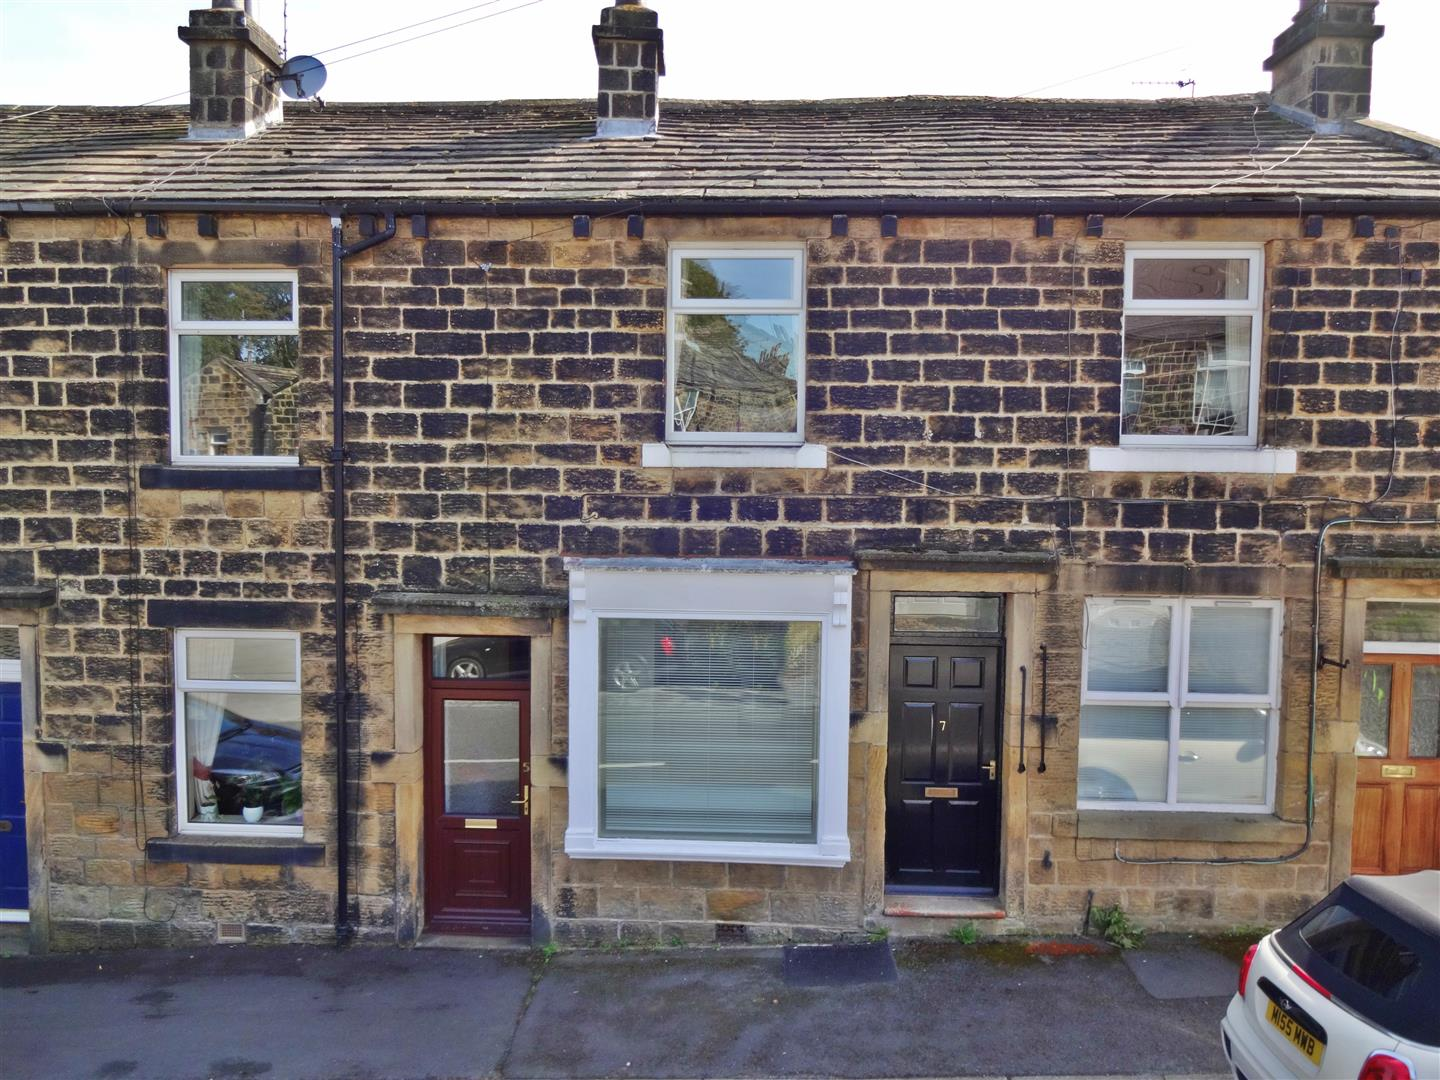 Derry Hill, Menston, LS29 6NE